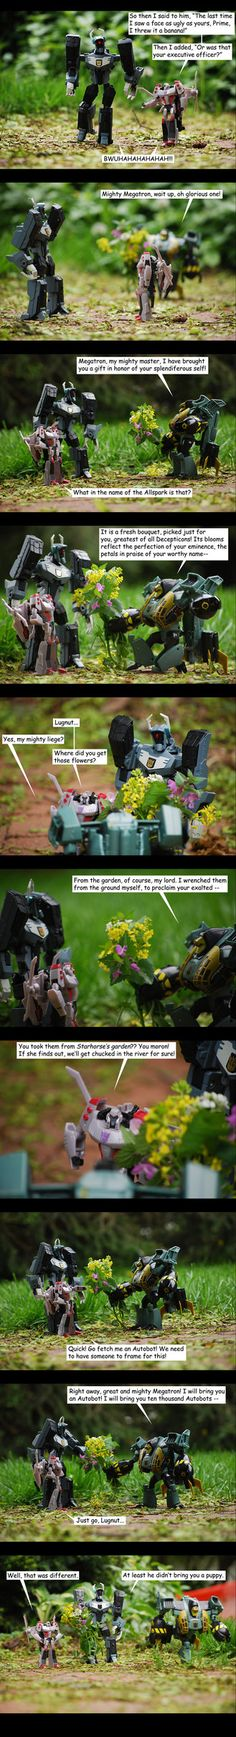 For the Glory of Megatron - 1 by The-Starhorse.deviantart.com on @DeviantArt